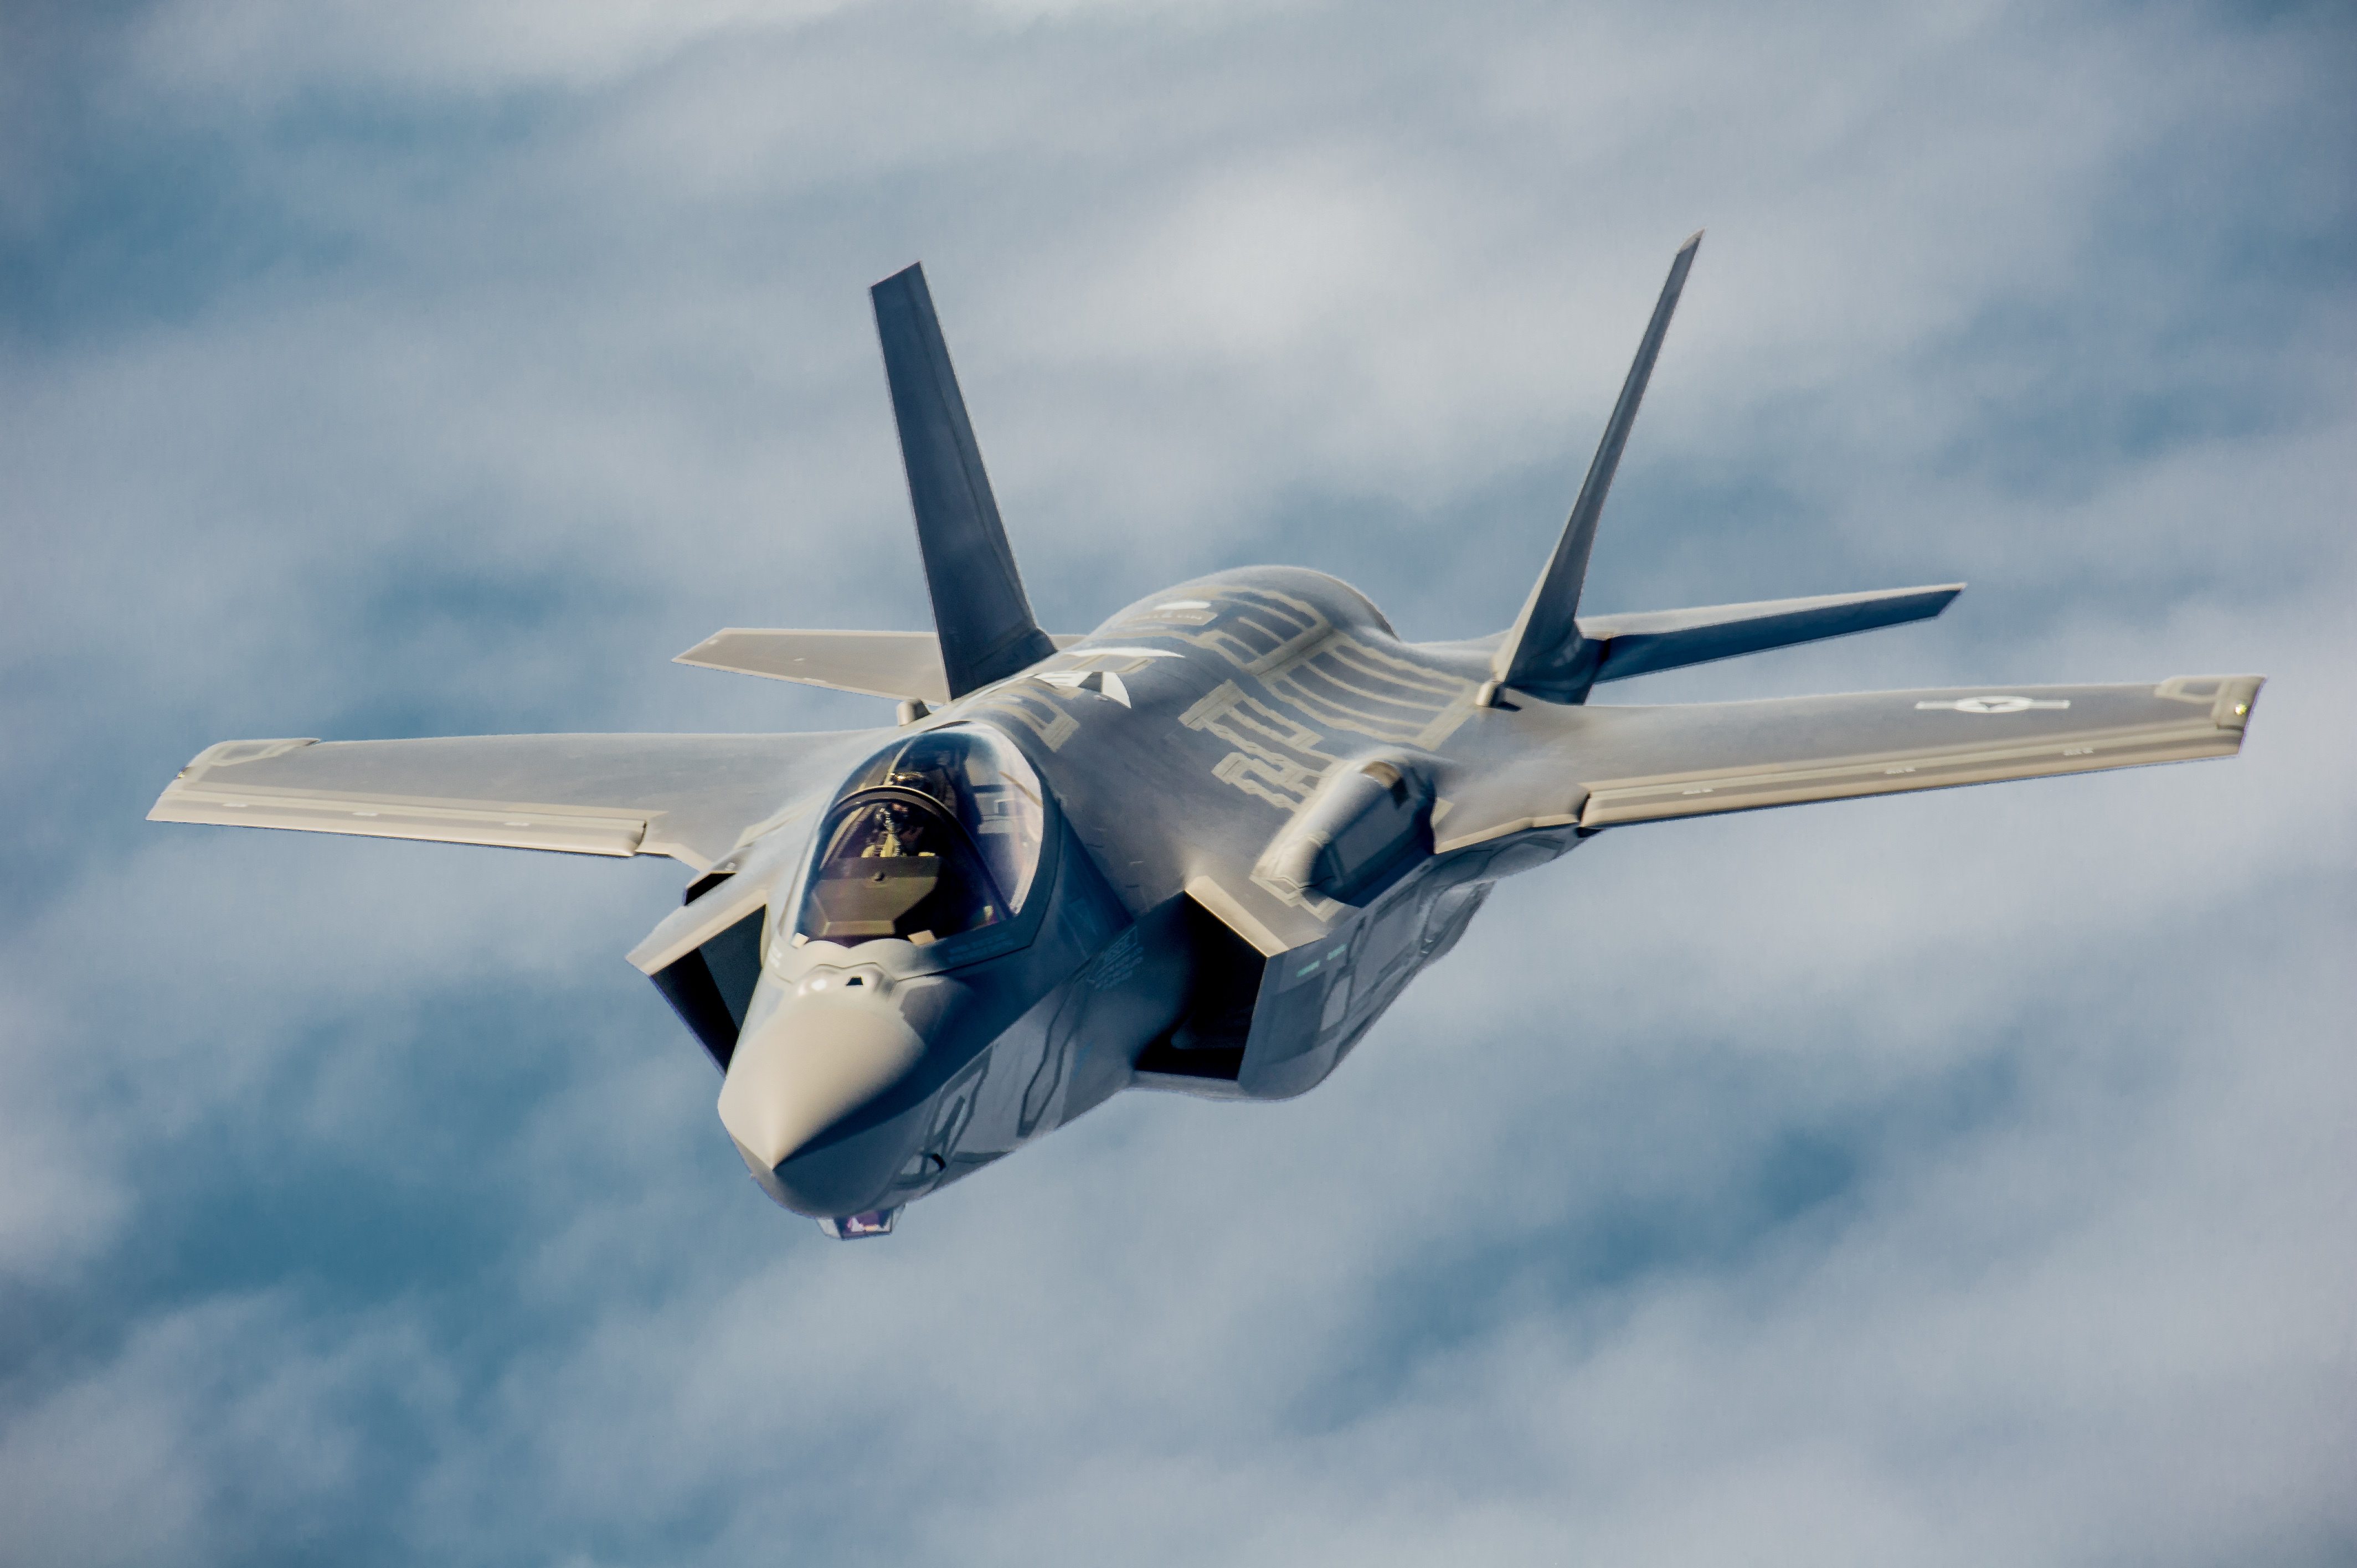 ​Истребитель F-35 http://upload.wikimedia.org/wikipedia/commons/e/e3/A_U.S._Air_Force_pilot_navigates_an_F-35A_Lightning_II_aircraft_assigned_to_the_58th_Fighter_Squadron,_33rd_Fighter_Wing_into_position_to_refuel_with_a_KC-135_Stratotanker_assigned_to_the_336th_Air_Refueling_130516-F-XL333–499.jpg - Япония намерена расширить заказ на истребители F-35 | Военно-исторический портал Warspot.ru